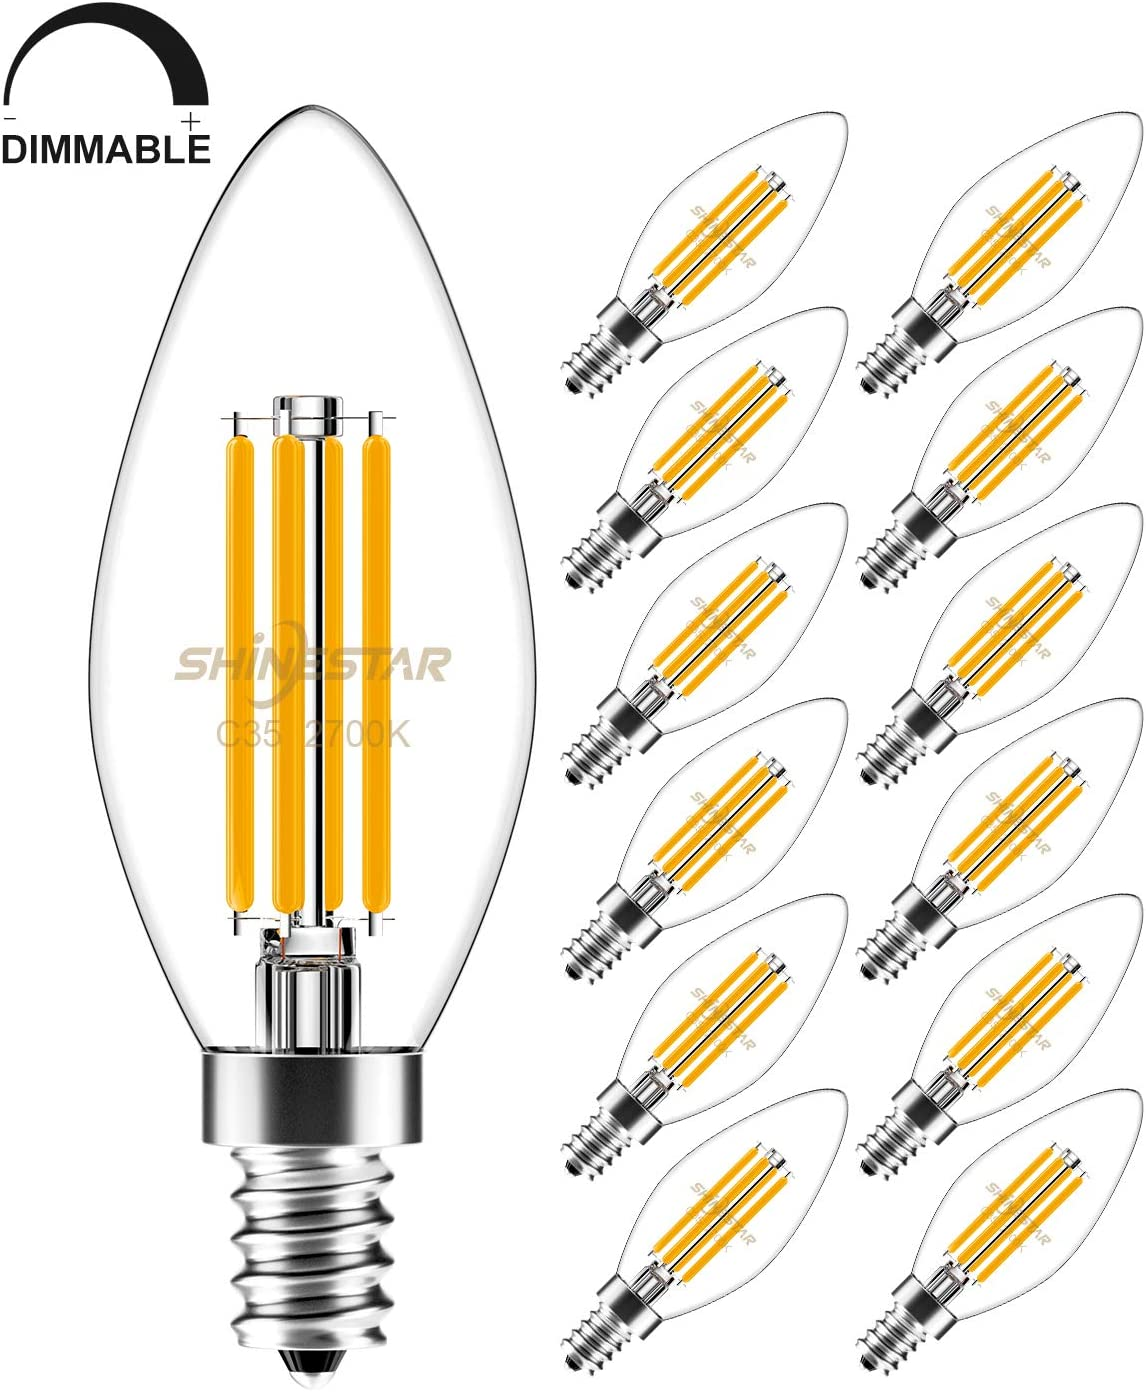 12-Pack Dimmable E12 LED Candelabra Bulbs 60 watt Equivalent, 2700K Warm White, B11 B10 Type B LED Filament Bulb, Chandelier Bulb, Ceiling Fan Light Bulb